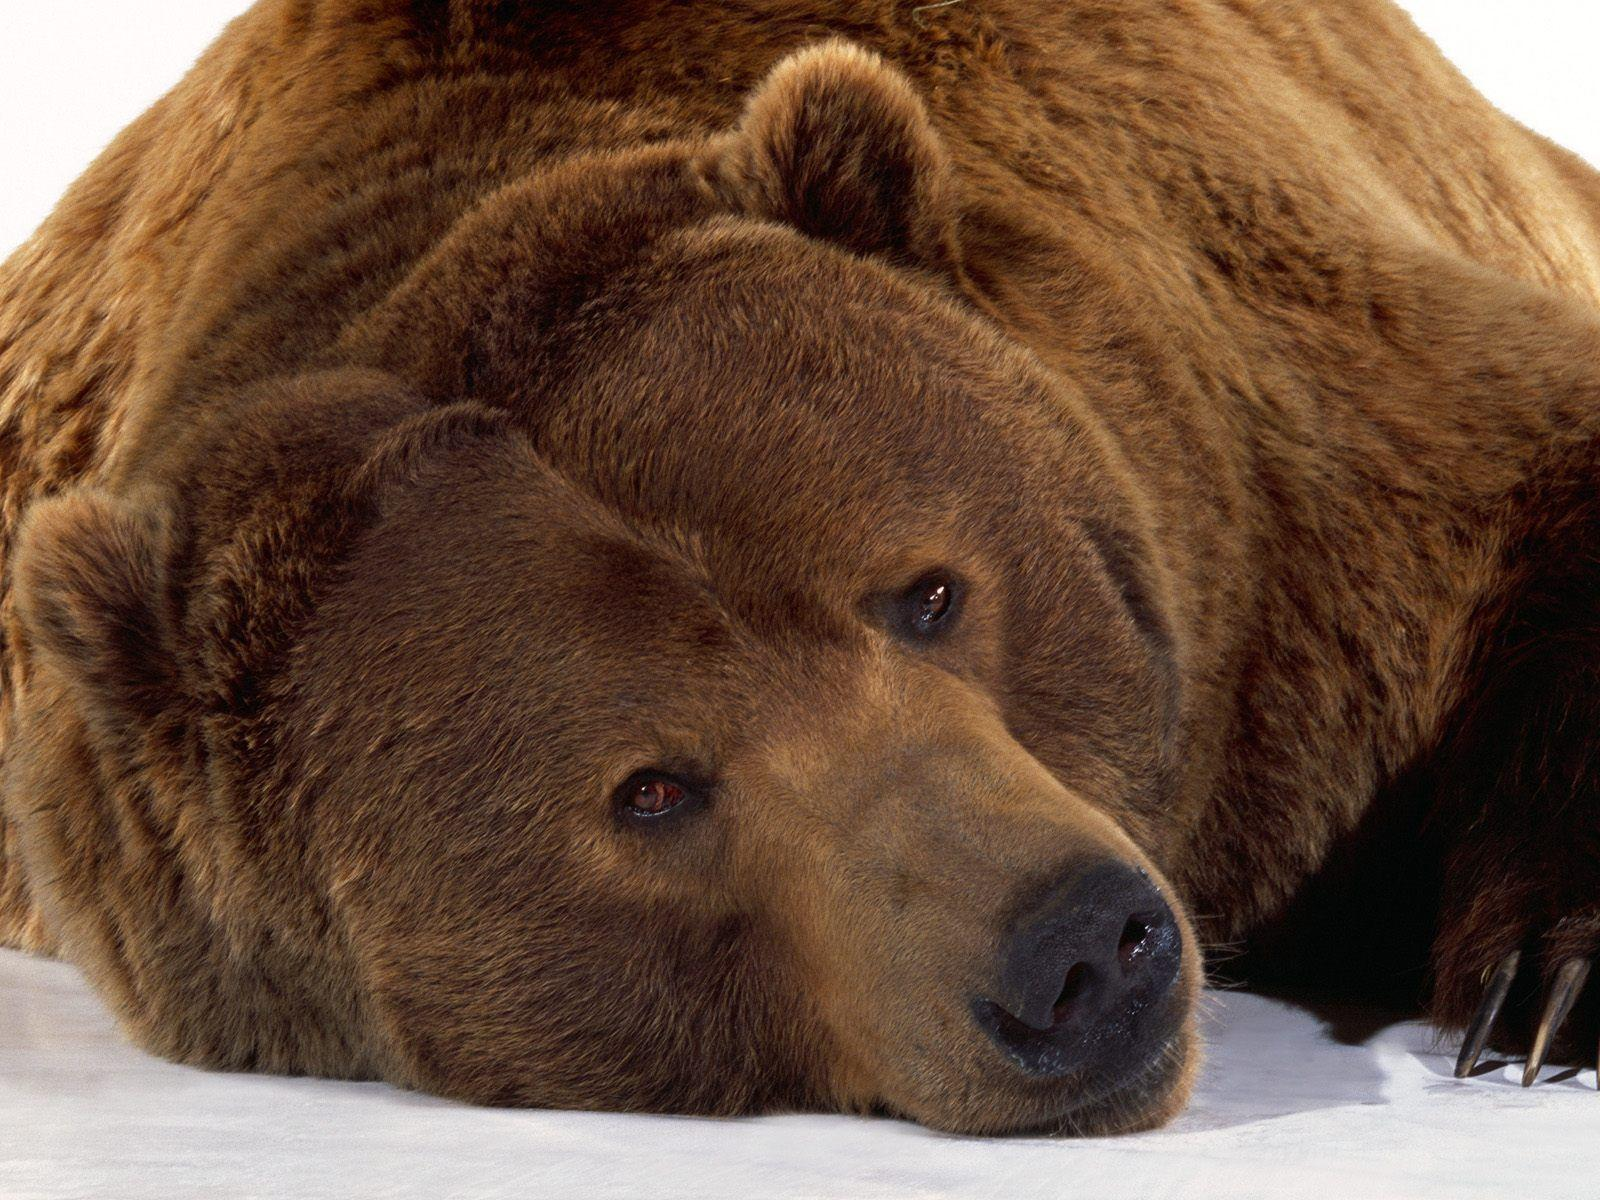 Wallpapers with grizzly bears - Barbaras HD Wallpapers